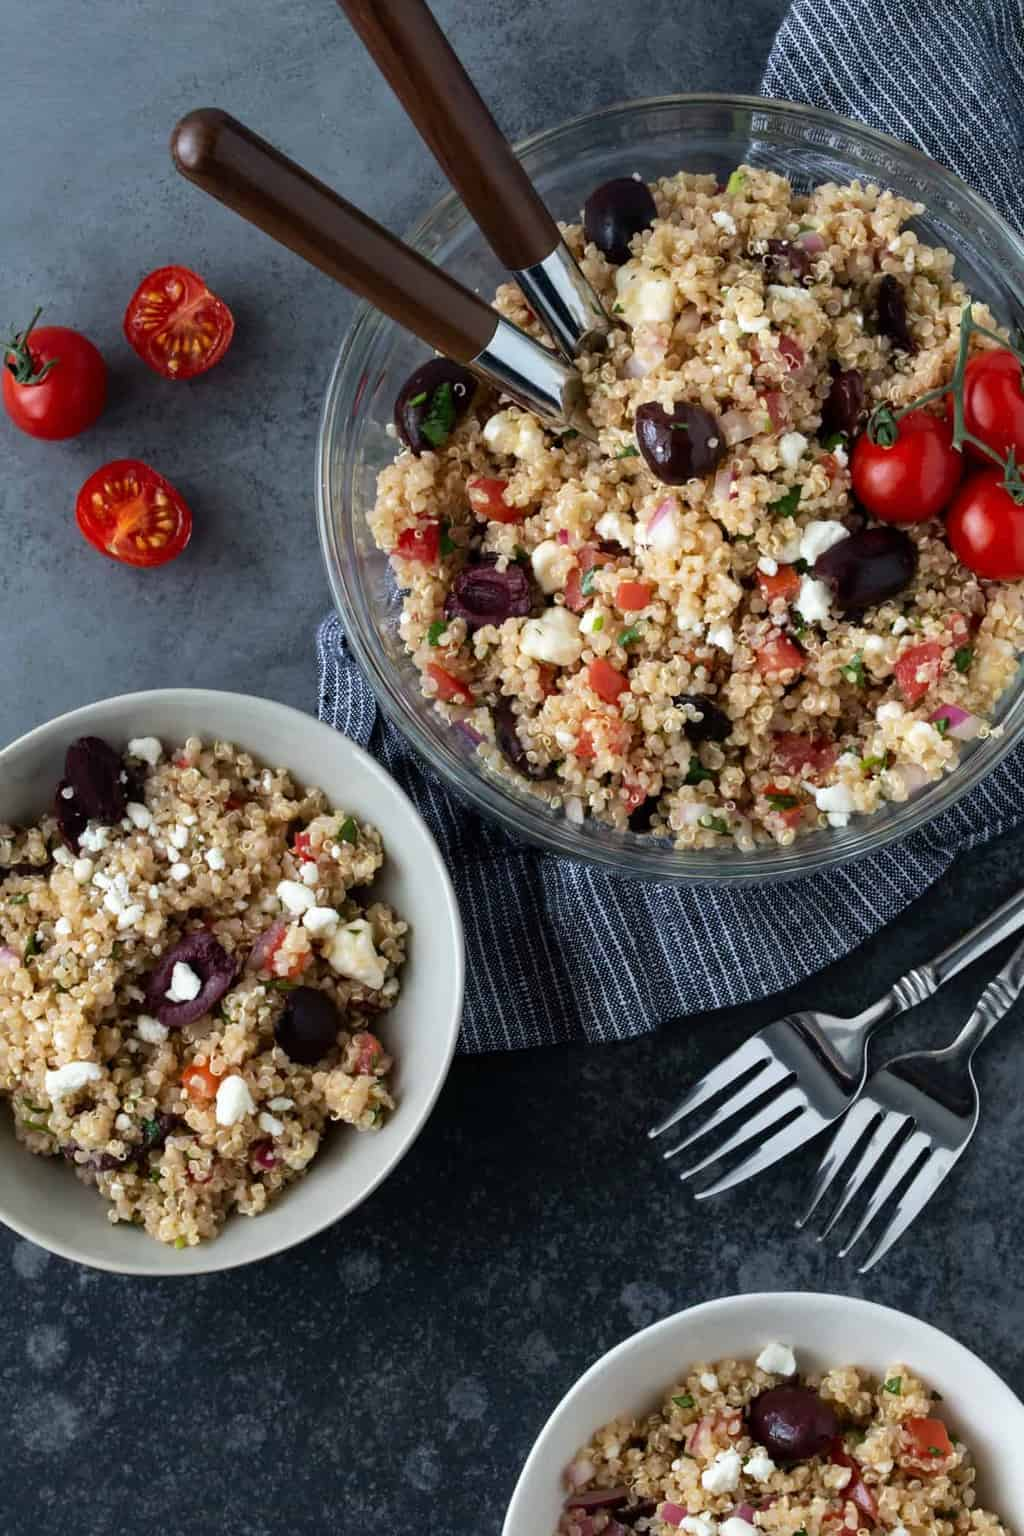 Mediterranean Quinoa Salad recipe in glass serving bowl with small bowl on side for eating.